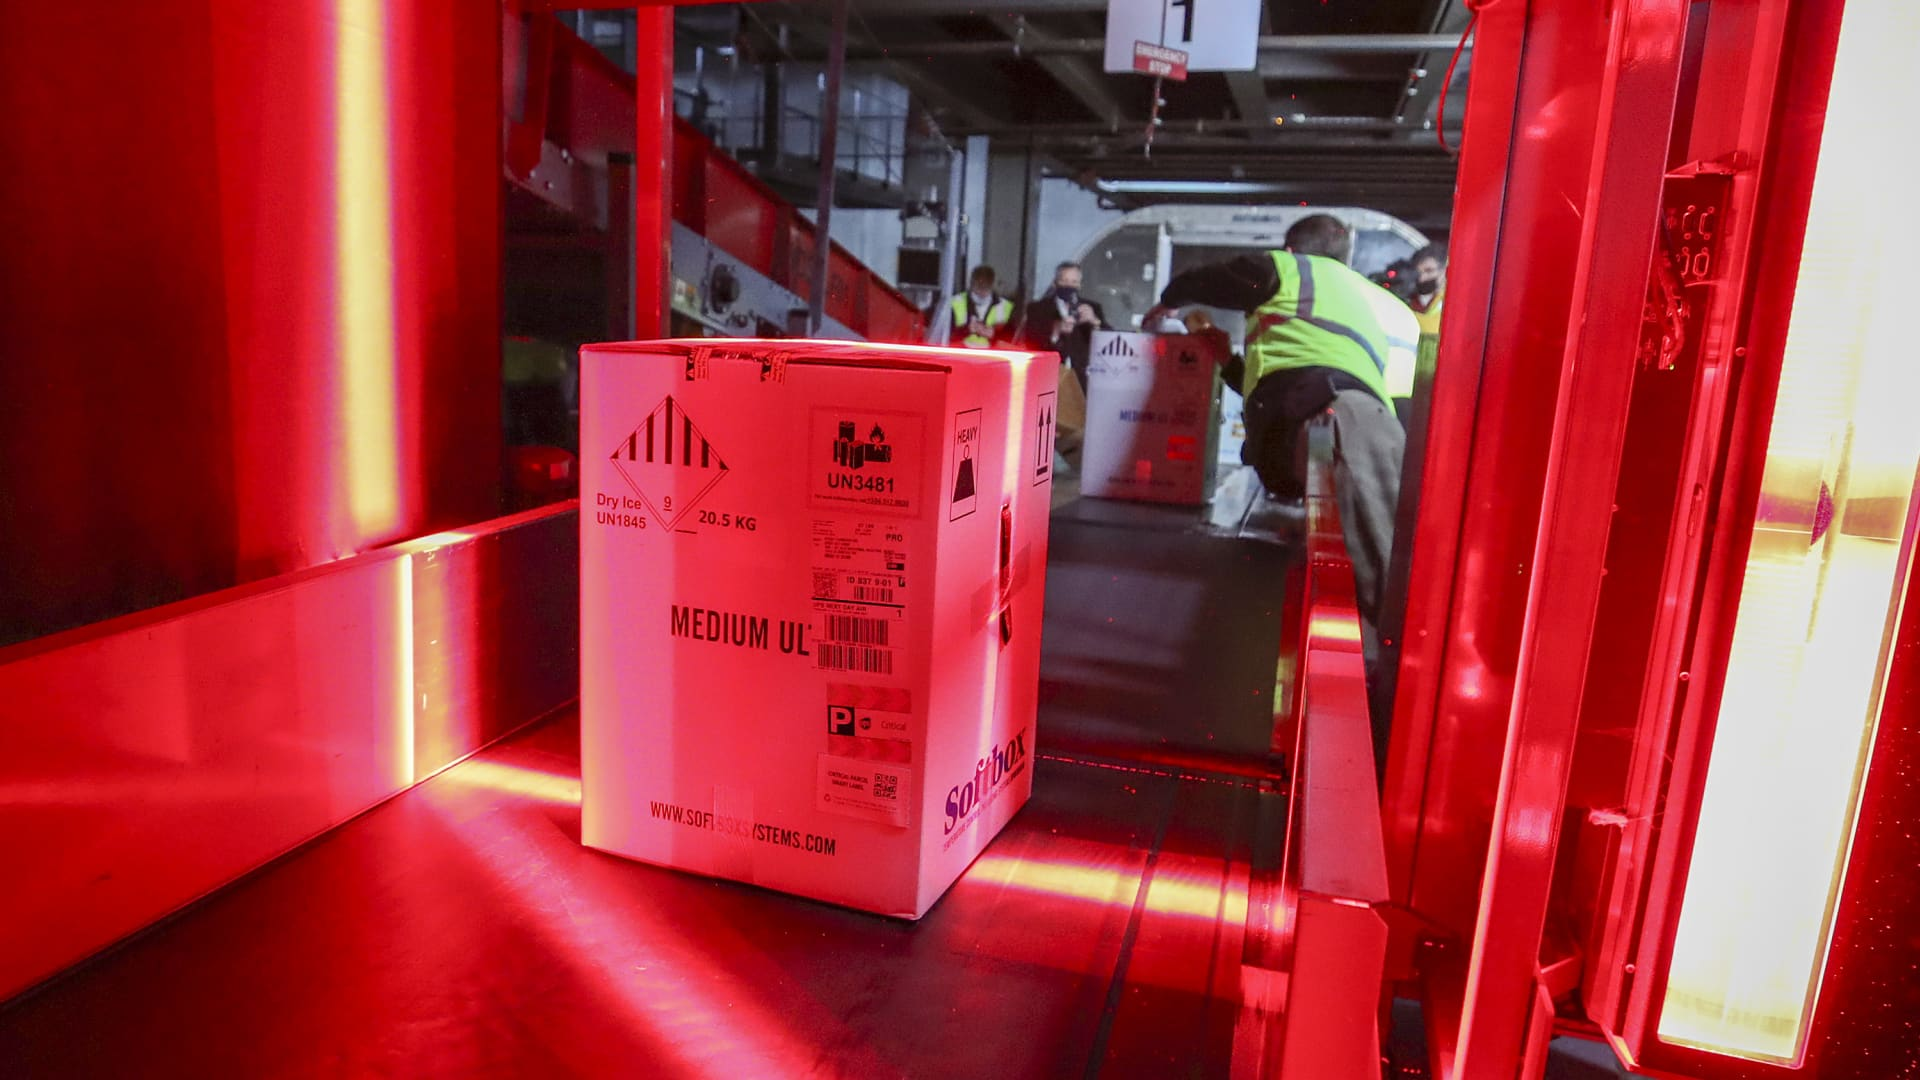 Boxes containing the first shipments of the Pfizer and BioNTech Covid vaccine are unloaded from air shipping containers and scanned at UPS Worldport on December 13, in Louisville, Kentucky.